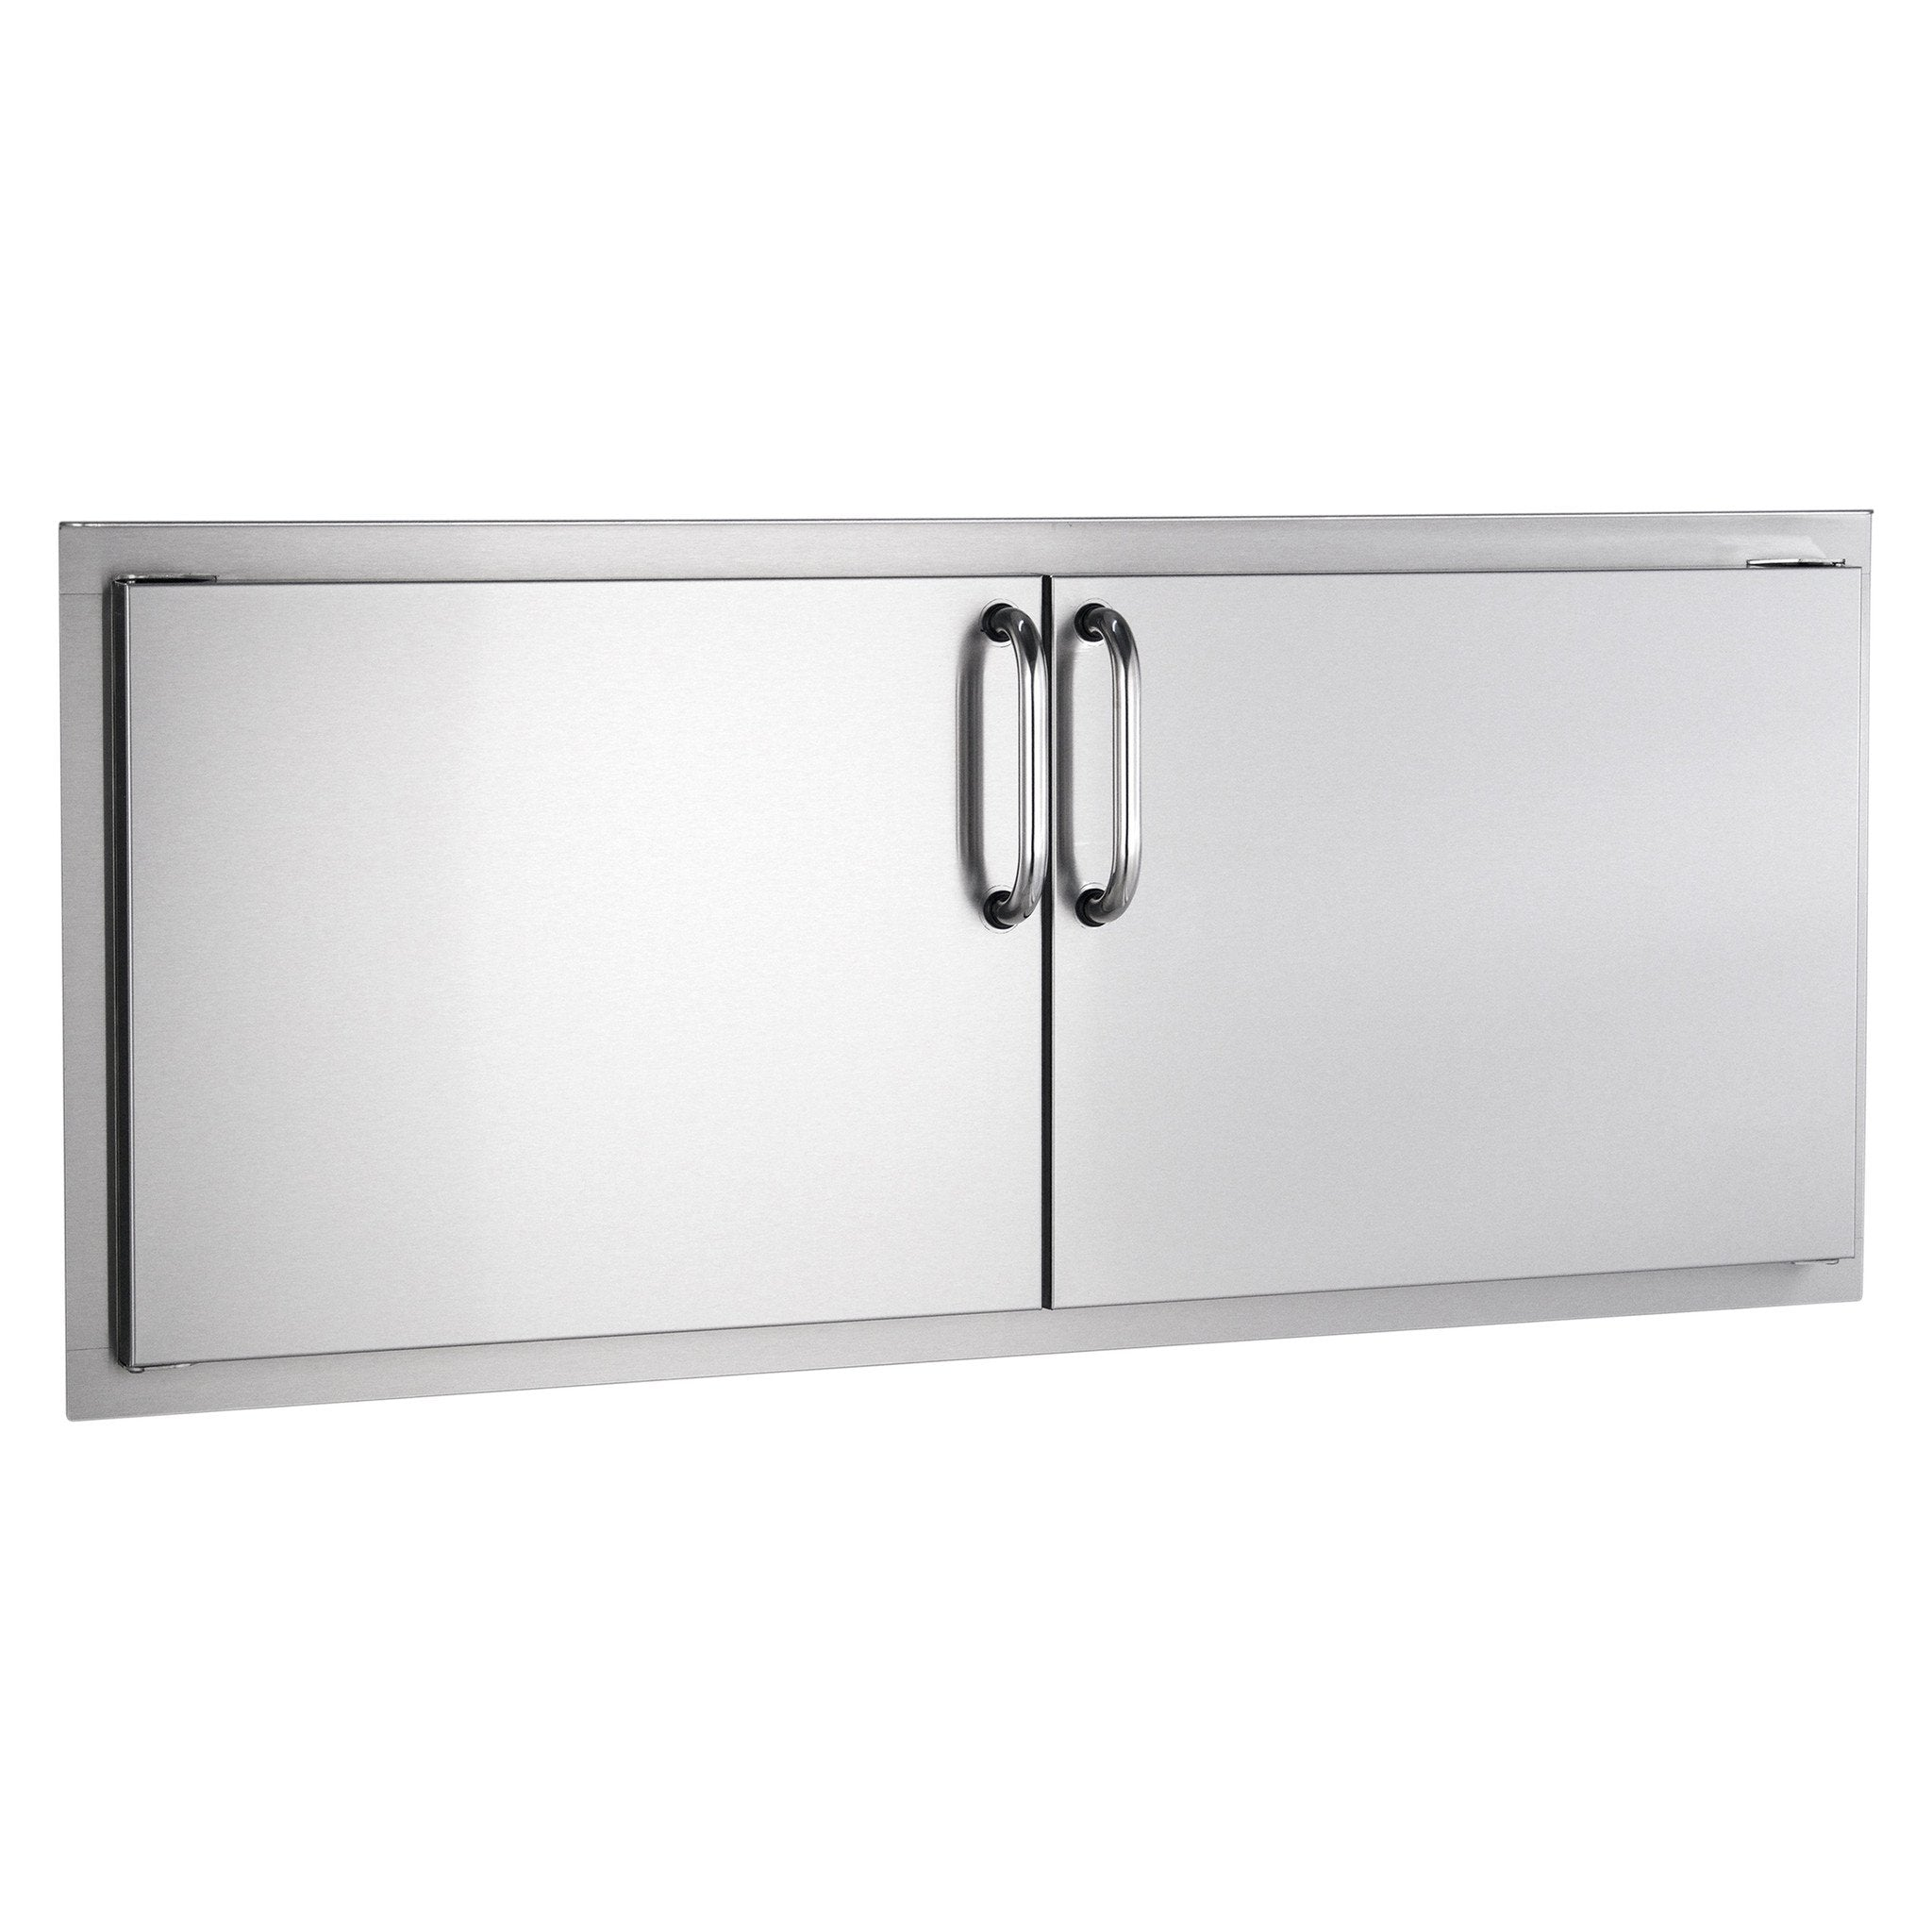 American Outdoor Grill 16 X 39 Stainless Double Access Door